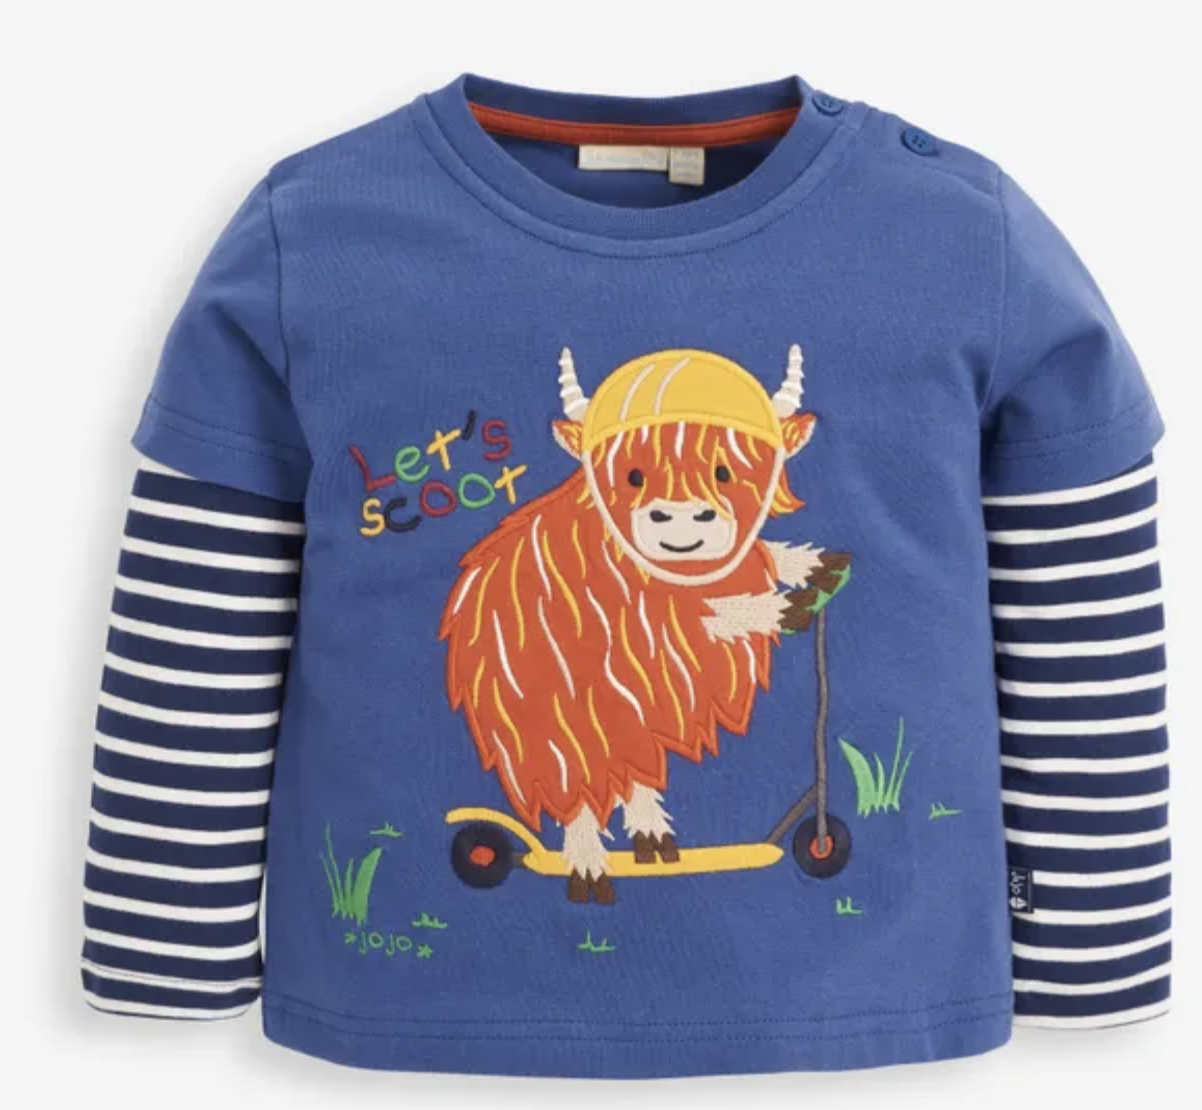 Scooting Highland Cow Applique Top IND34